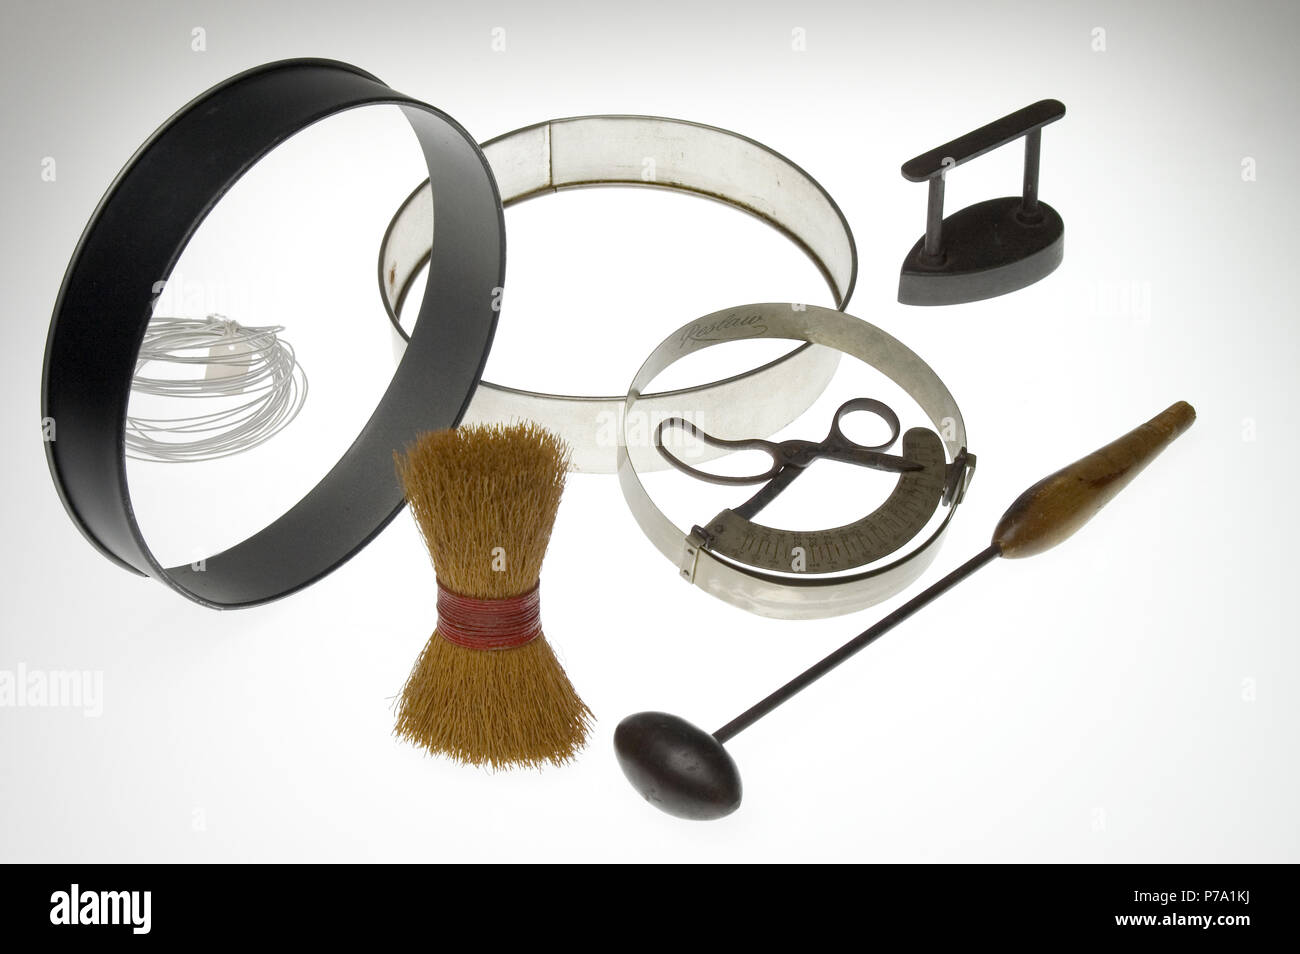 millinery hat making tools shot on a white light box - Stock Image